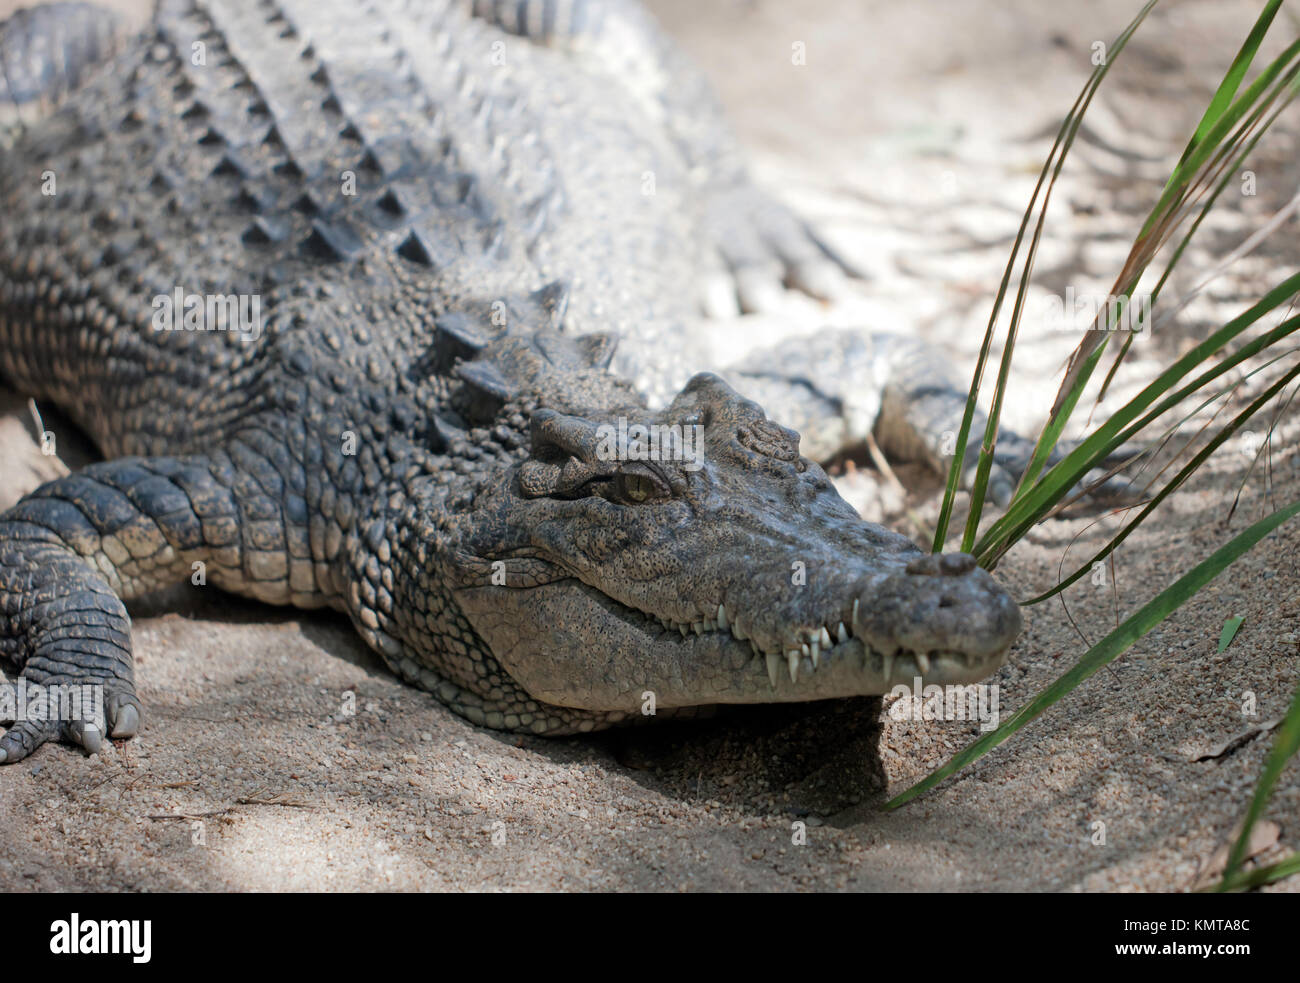 view of a large Estuarine  Crocodile at Hartley's Crocodile Adventures, Captain Cook Highway, Wangetti, Queensland, - Stock Image